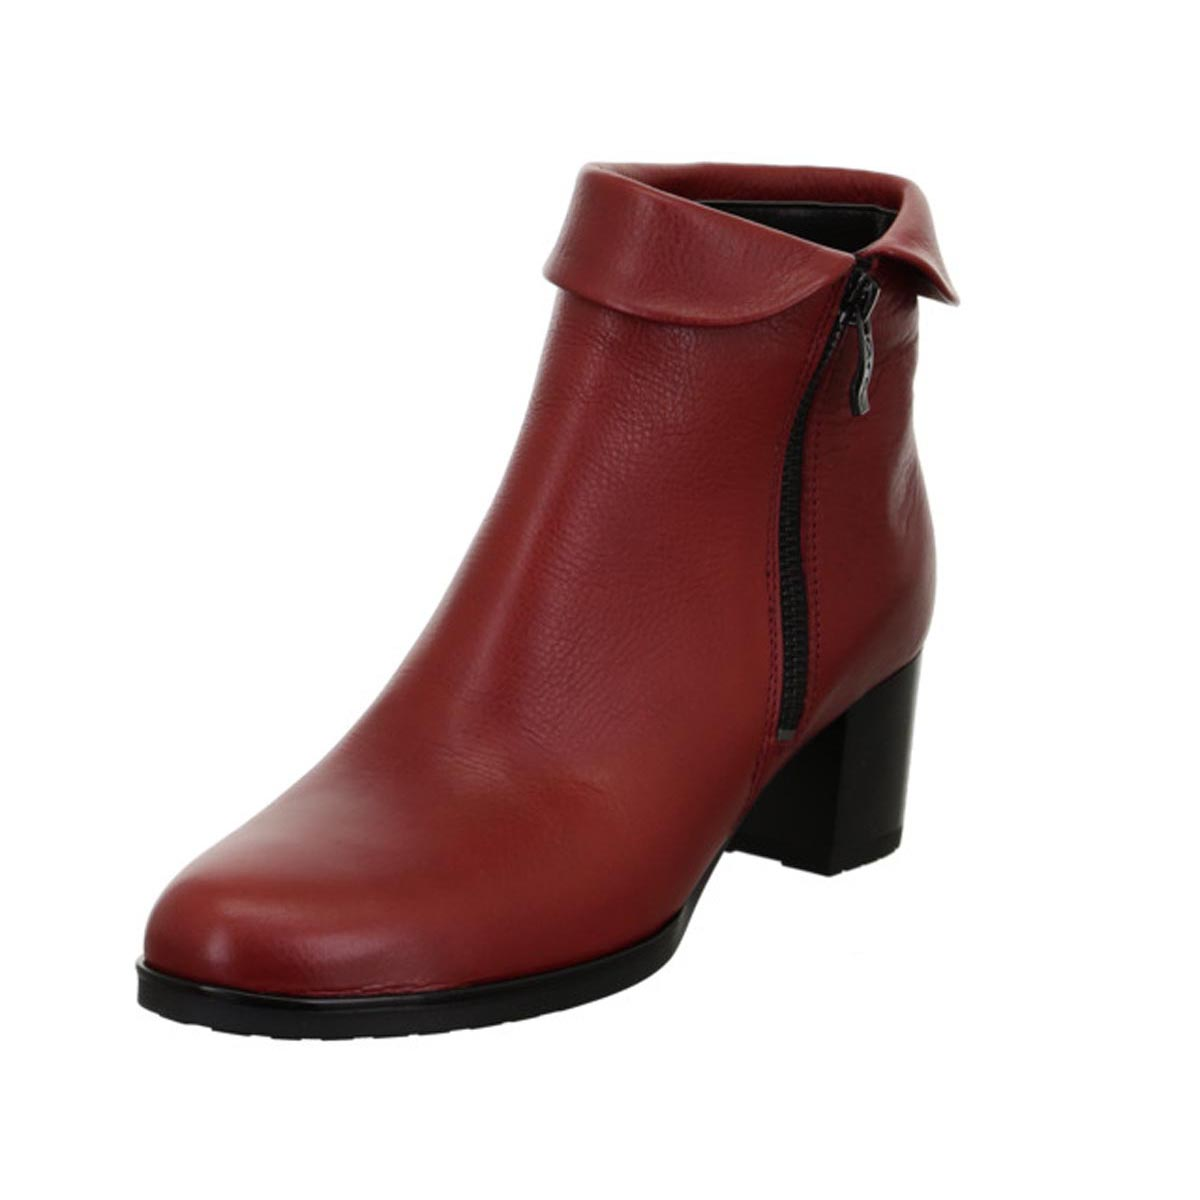 Ara - Rubin Red Leather Ankle Boot